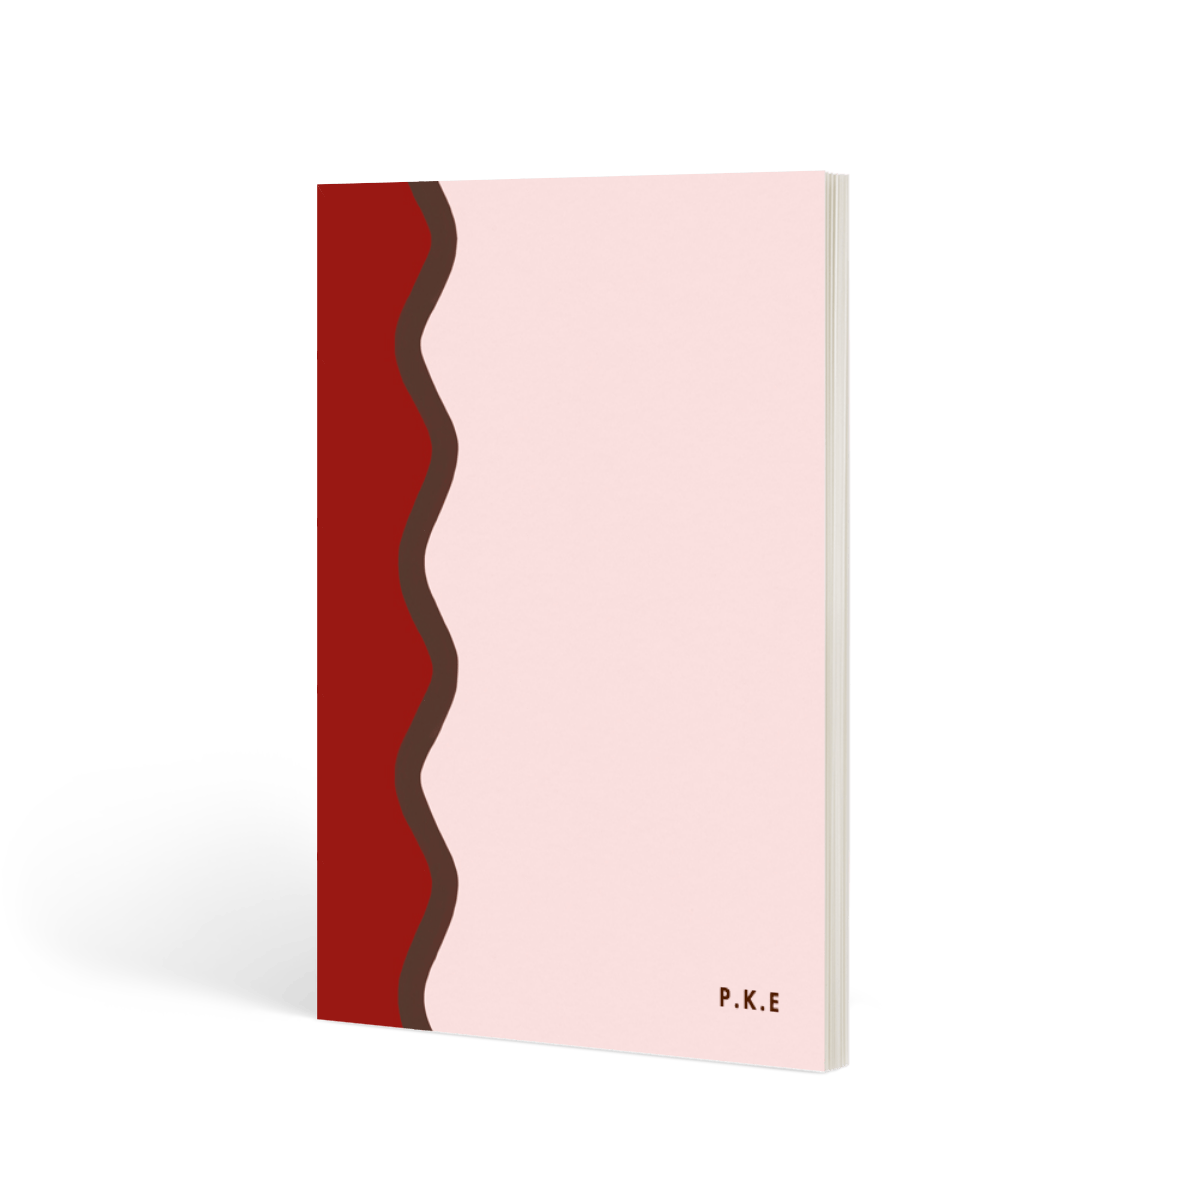 Https%3a%2f%2fwww.papier.com%2fproduct image%2f76037%2f6%2fscallop spine 17864 front 1557994403.png?ixlib=rb 1.1